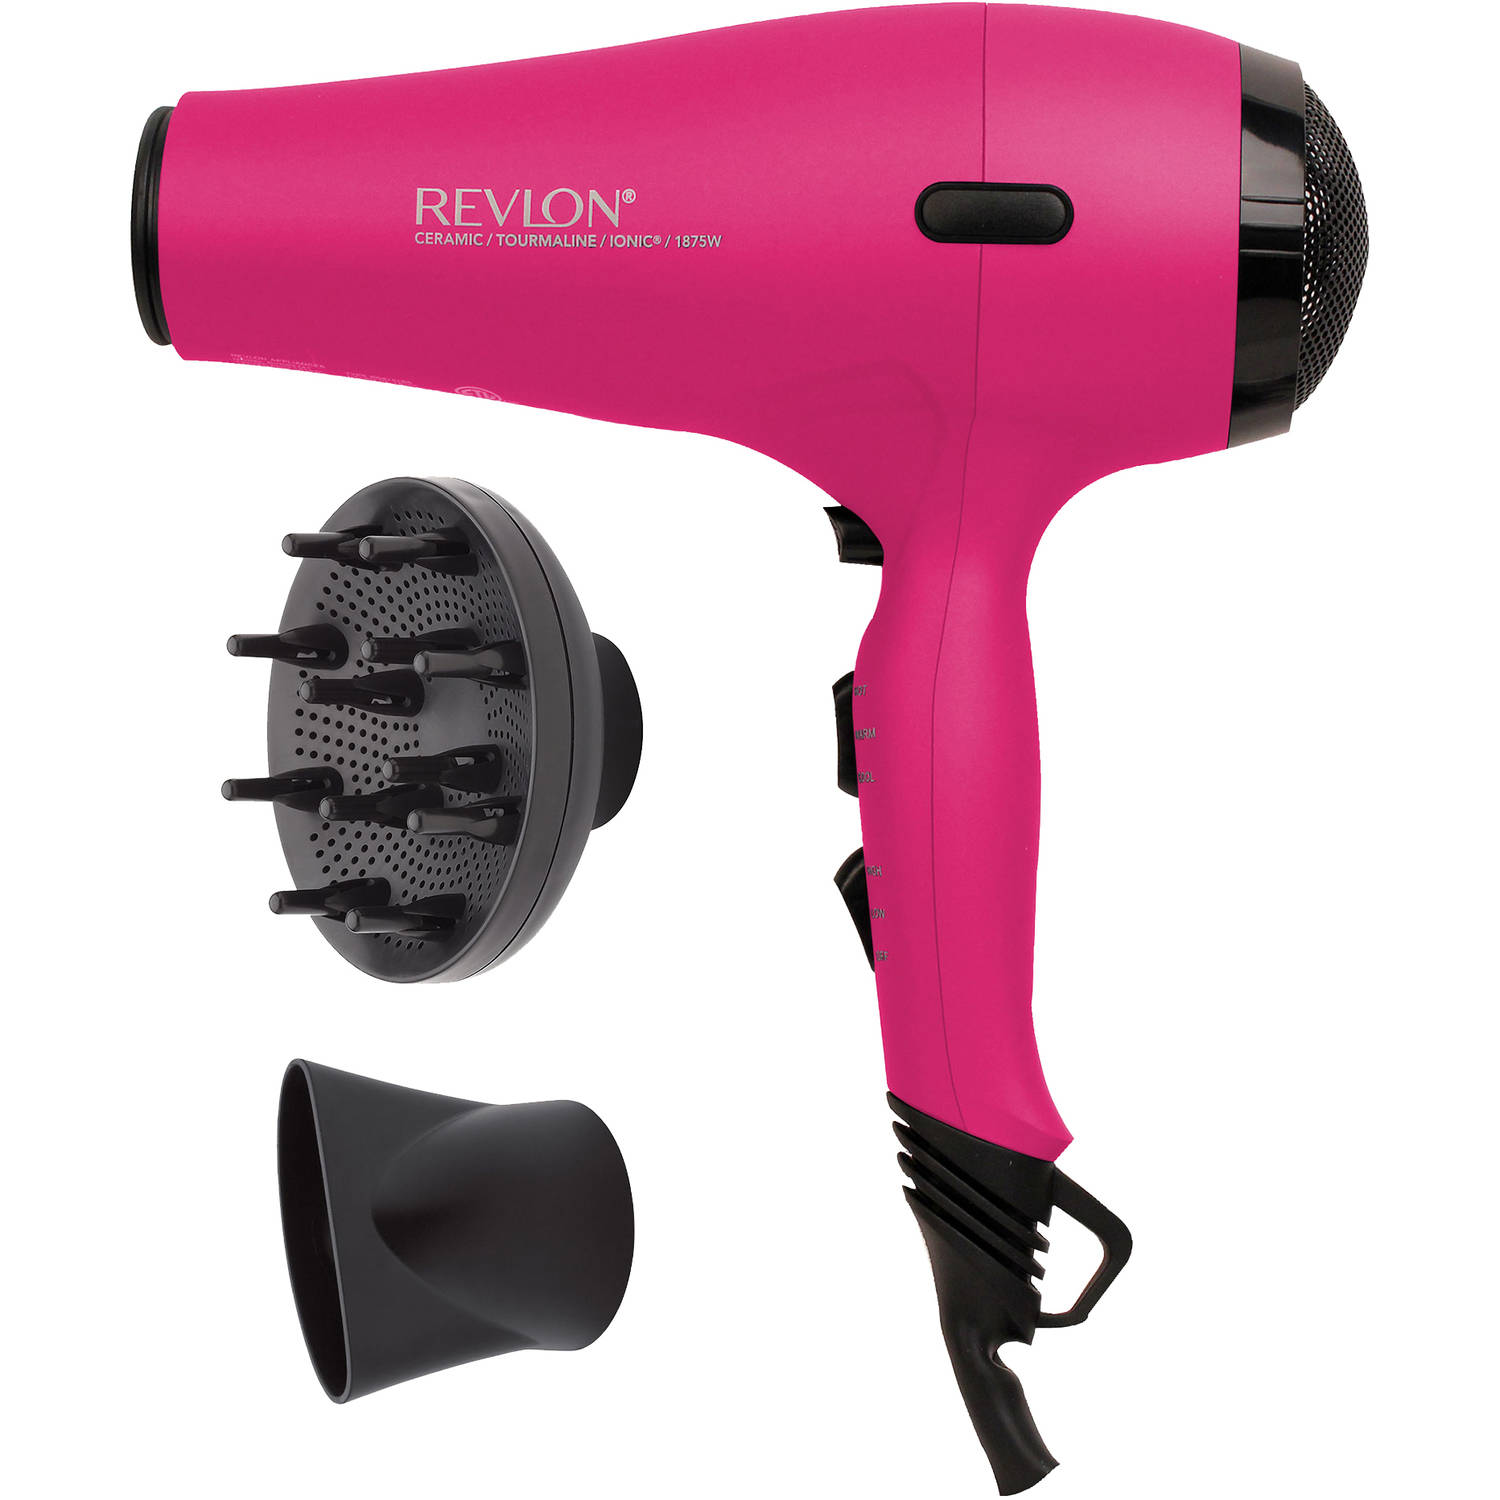 Revlon ProCollection 1875W Soft Feel AC Motor Hair Dryer, Pink